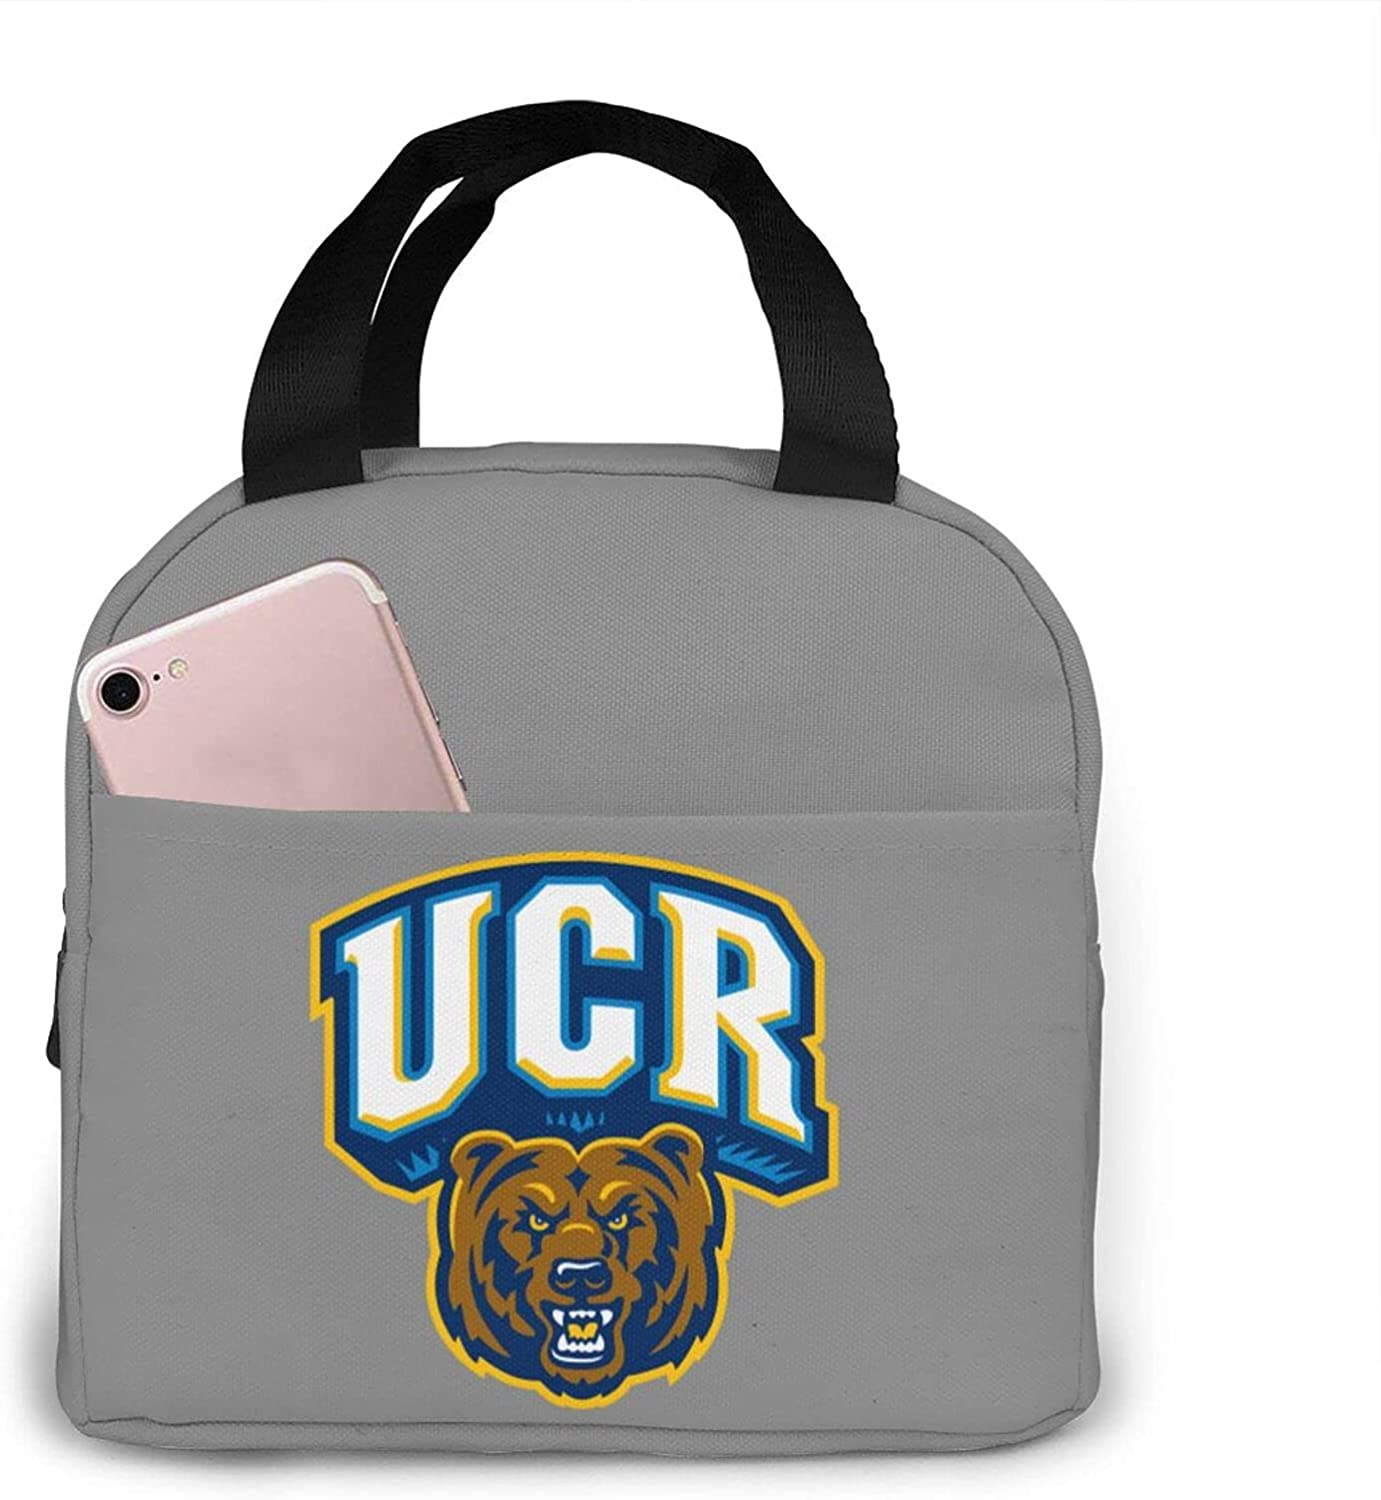 Max 56% OFF Uc Riverside University Insulated Splash-Proof Max 44% OFF Lunch Bag Unisex